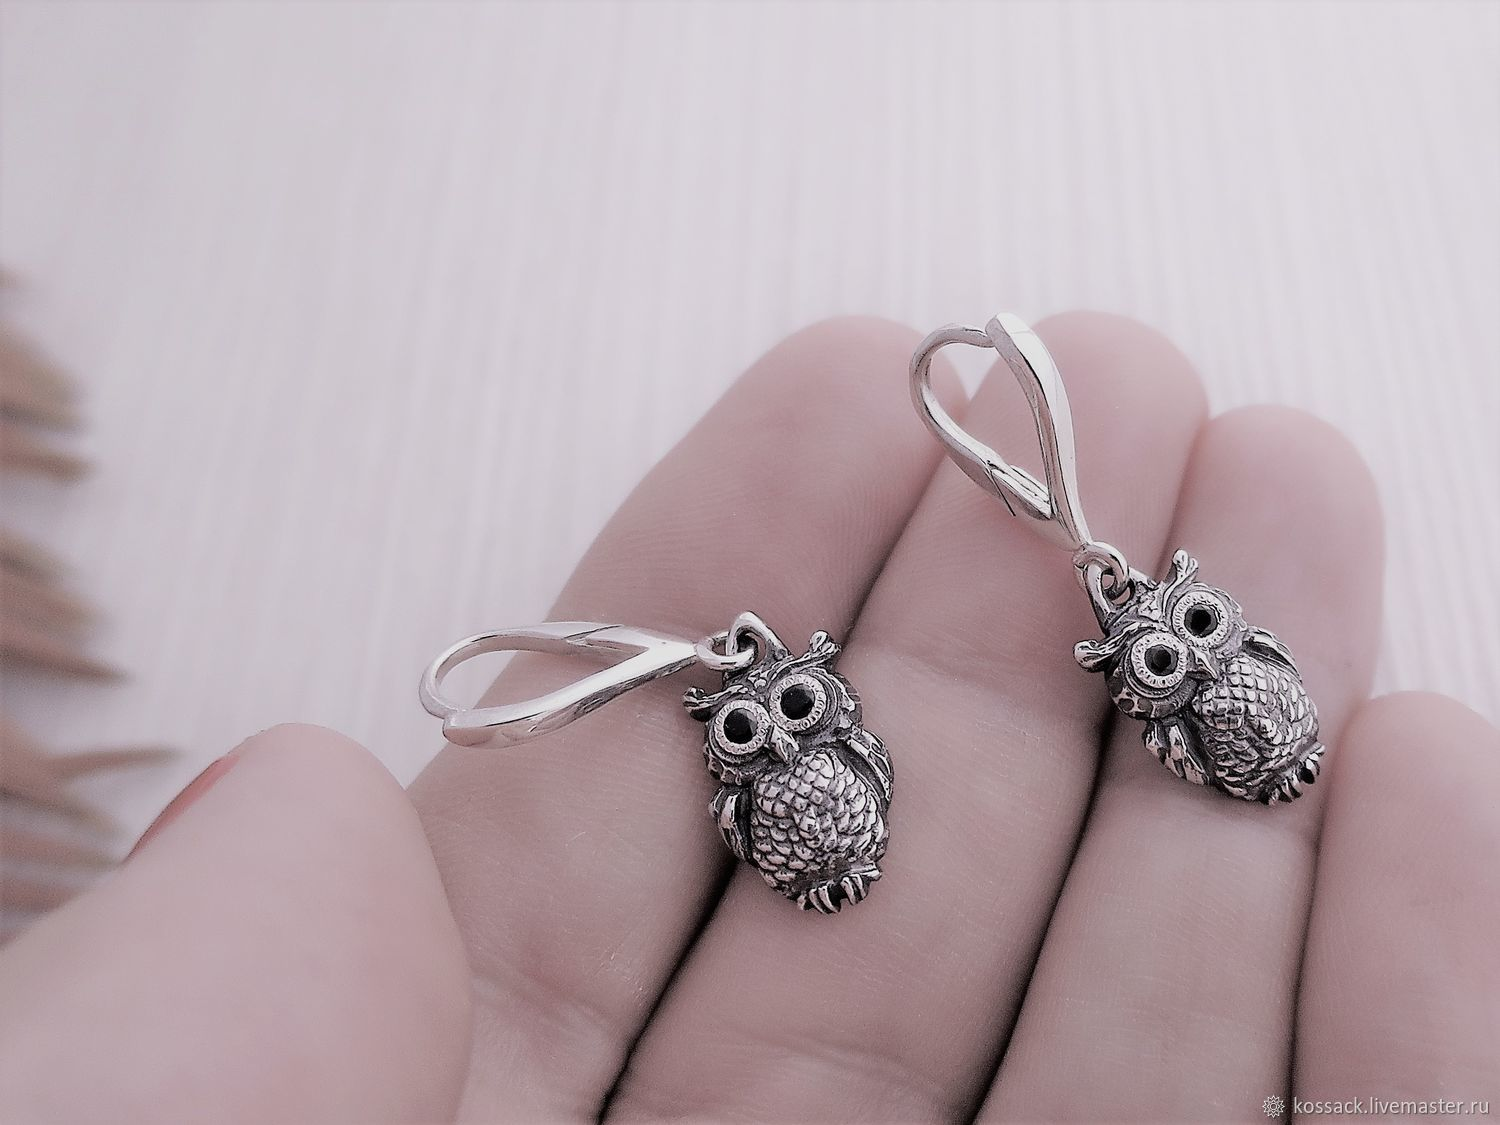 online rings of young stud ear image earrings stock girl with and woman